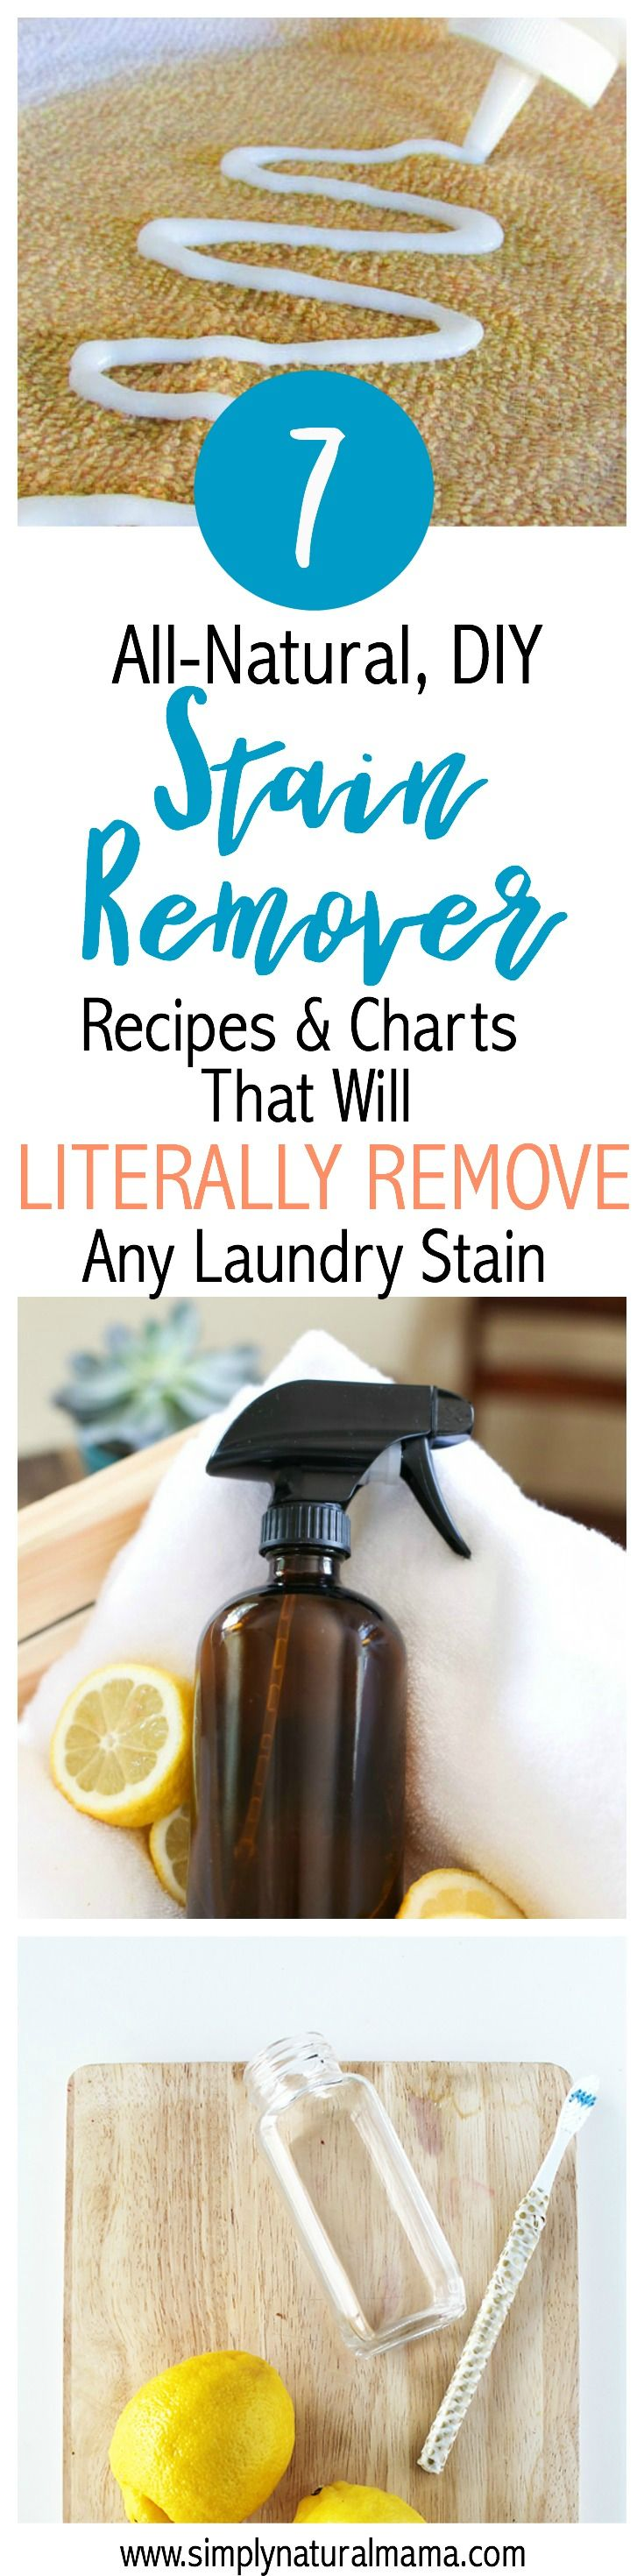 Every time I find a stain on my clothes, I get so frustrated! And I hate using toxic chemicals. That's why I am so glad I found this article. It has recipes and charts to remove any kind of laundry stain you can imagine. I am going to reference this again and again. via @simplynaturalma